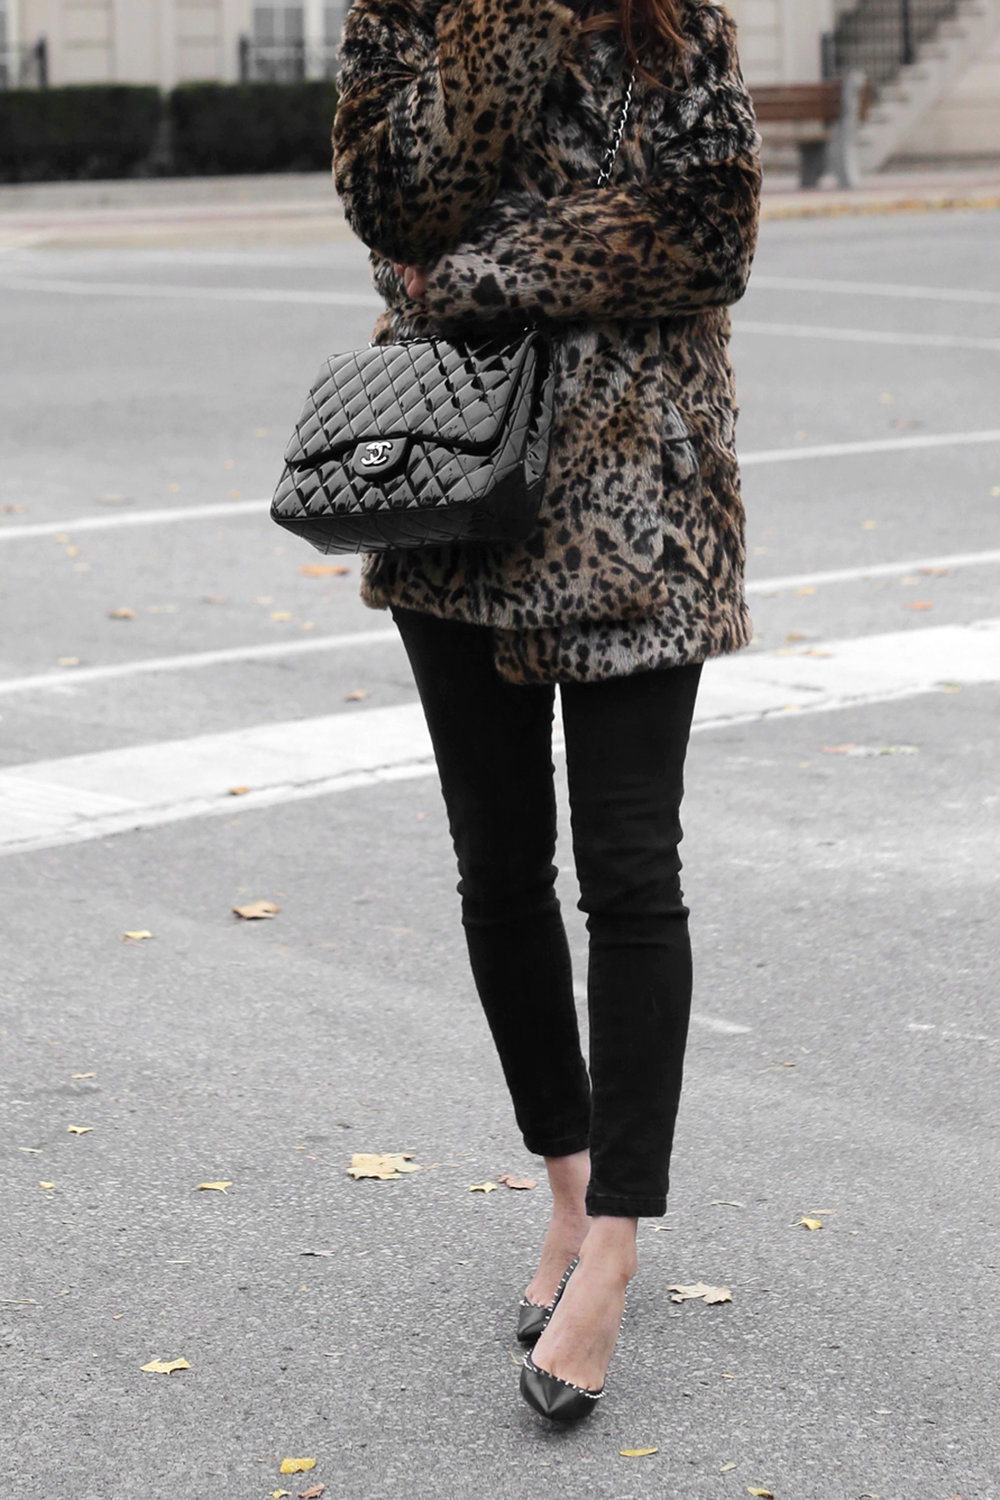 christian louboutin angelina spiked heels, chanel patent leather jumbo bag, leopard coat, kate moss inspiration street style_3032.jpg